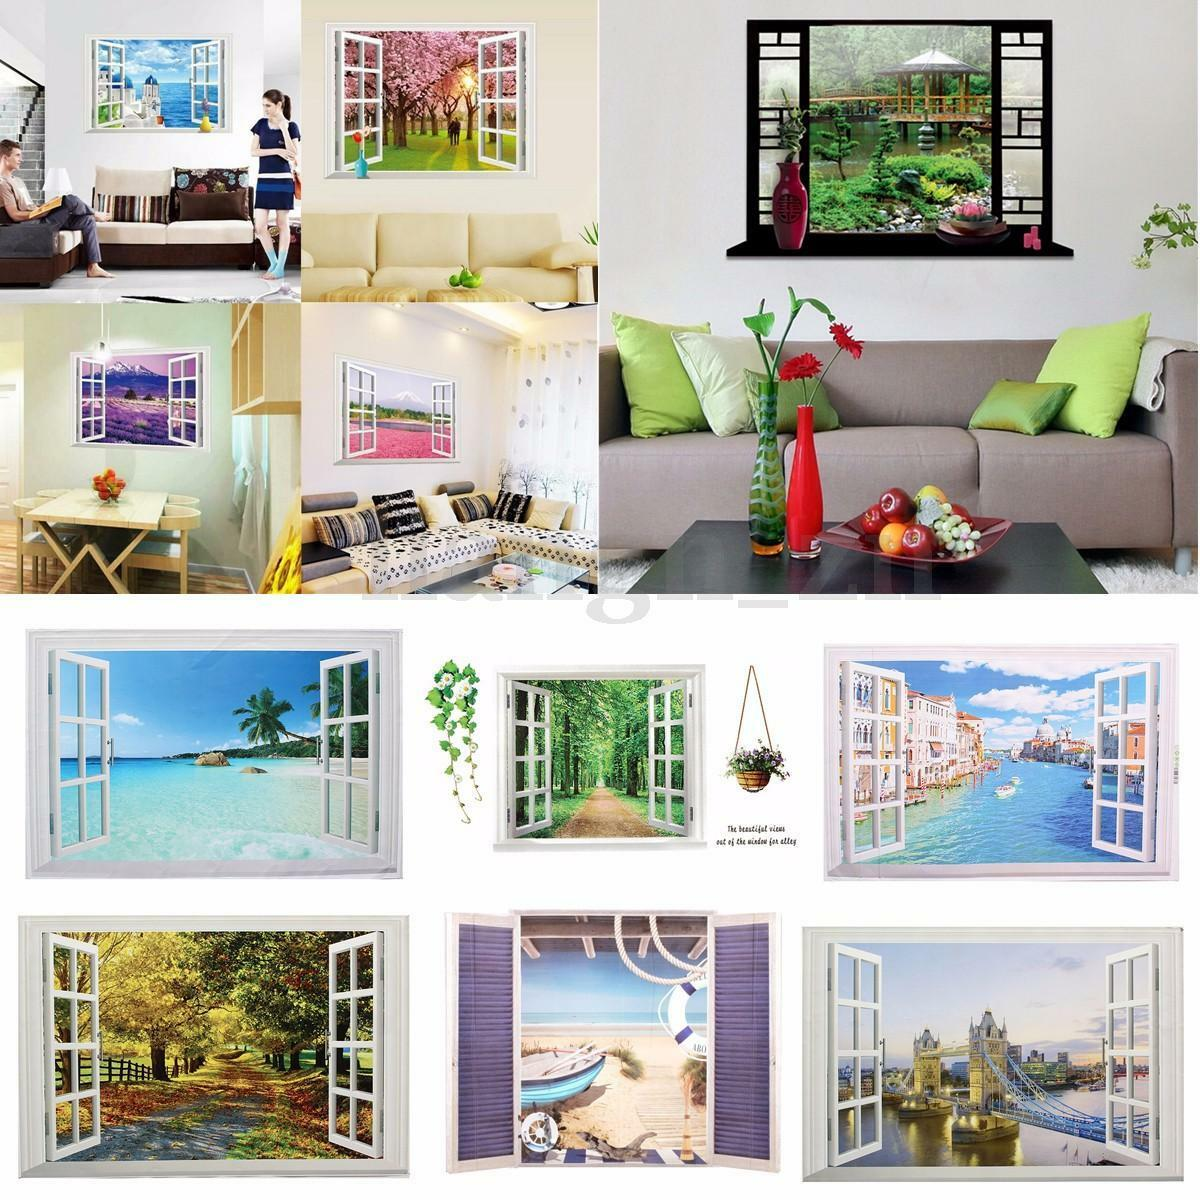 3d sticker muraux fen tre vue autocollant adh sif for Decoration adhesif fenetre